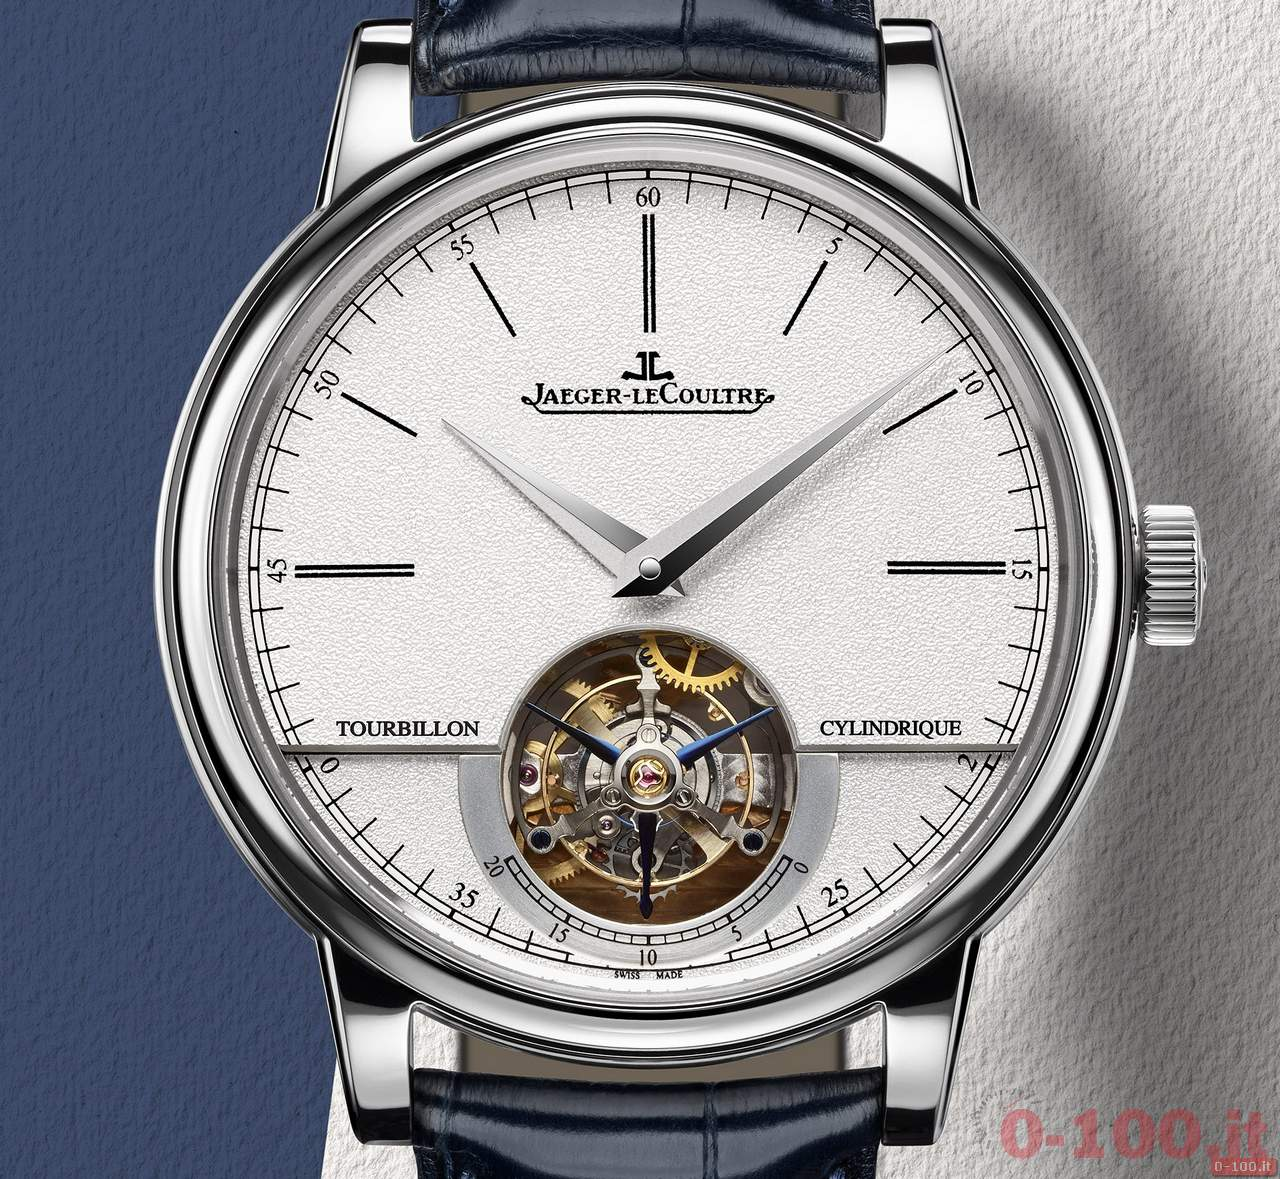 sihh-2016-jaeger-lecoultre-jaeger-lecoultre-master-grande-tradition-tourbillon-cylindrique_0-1001